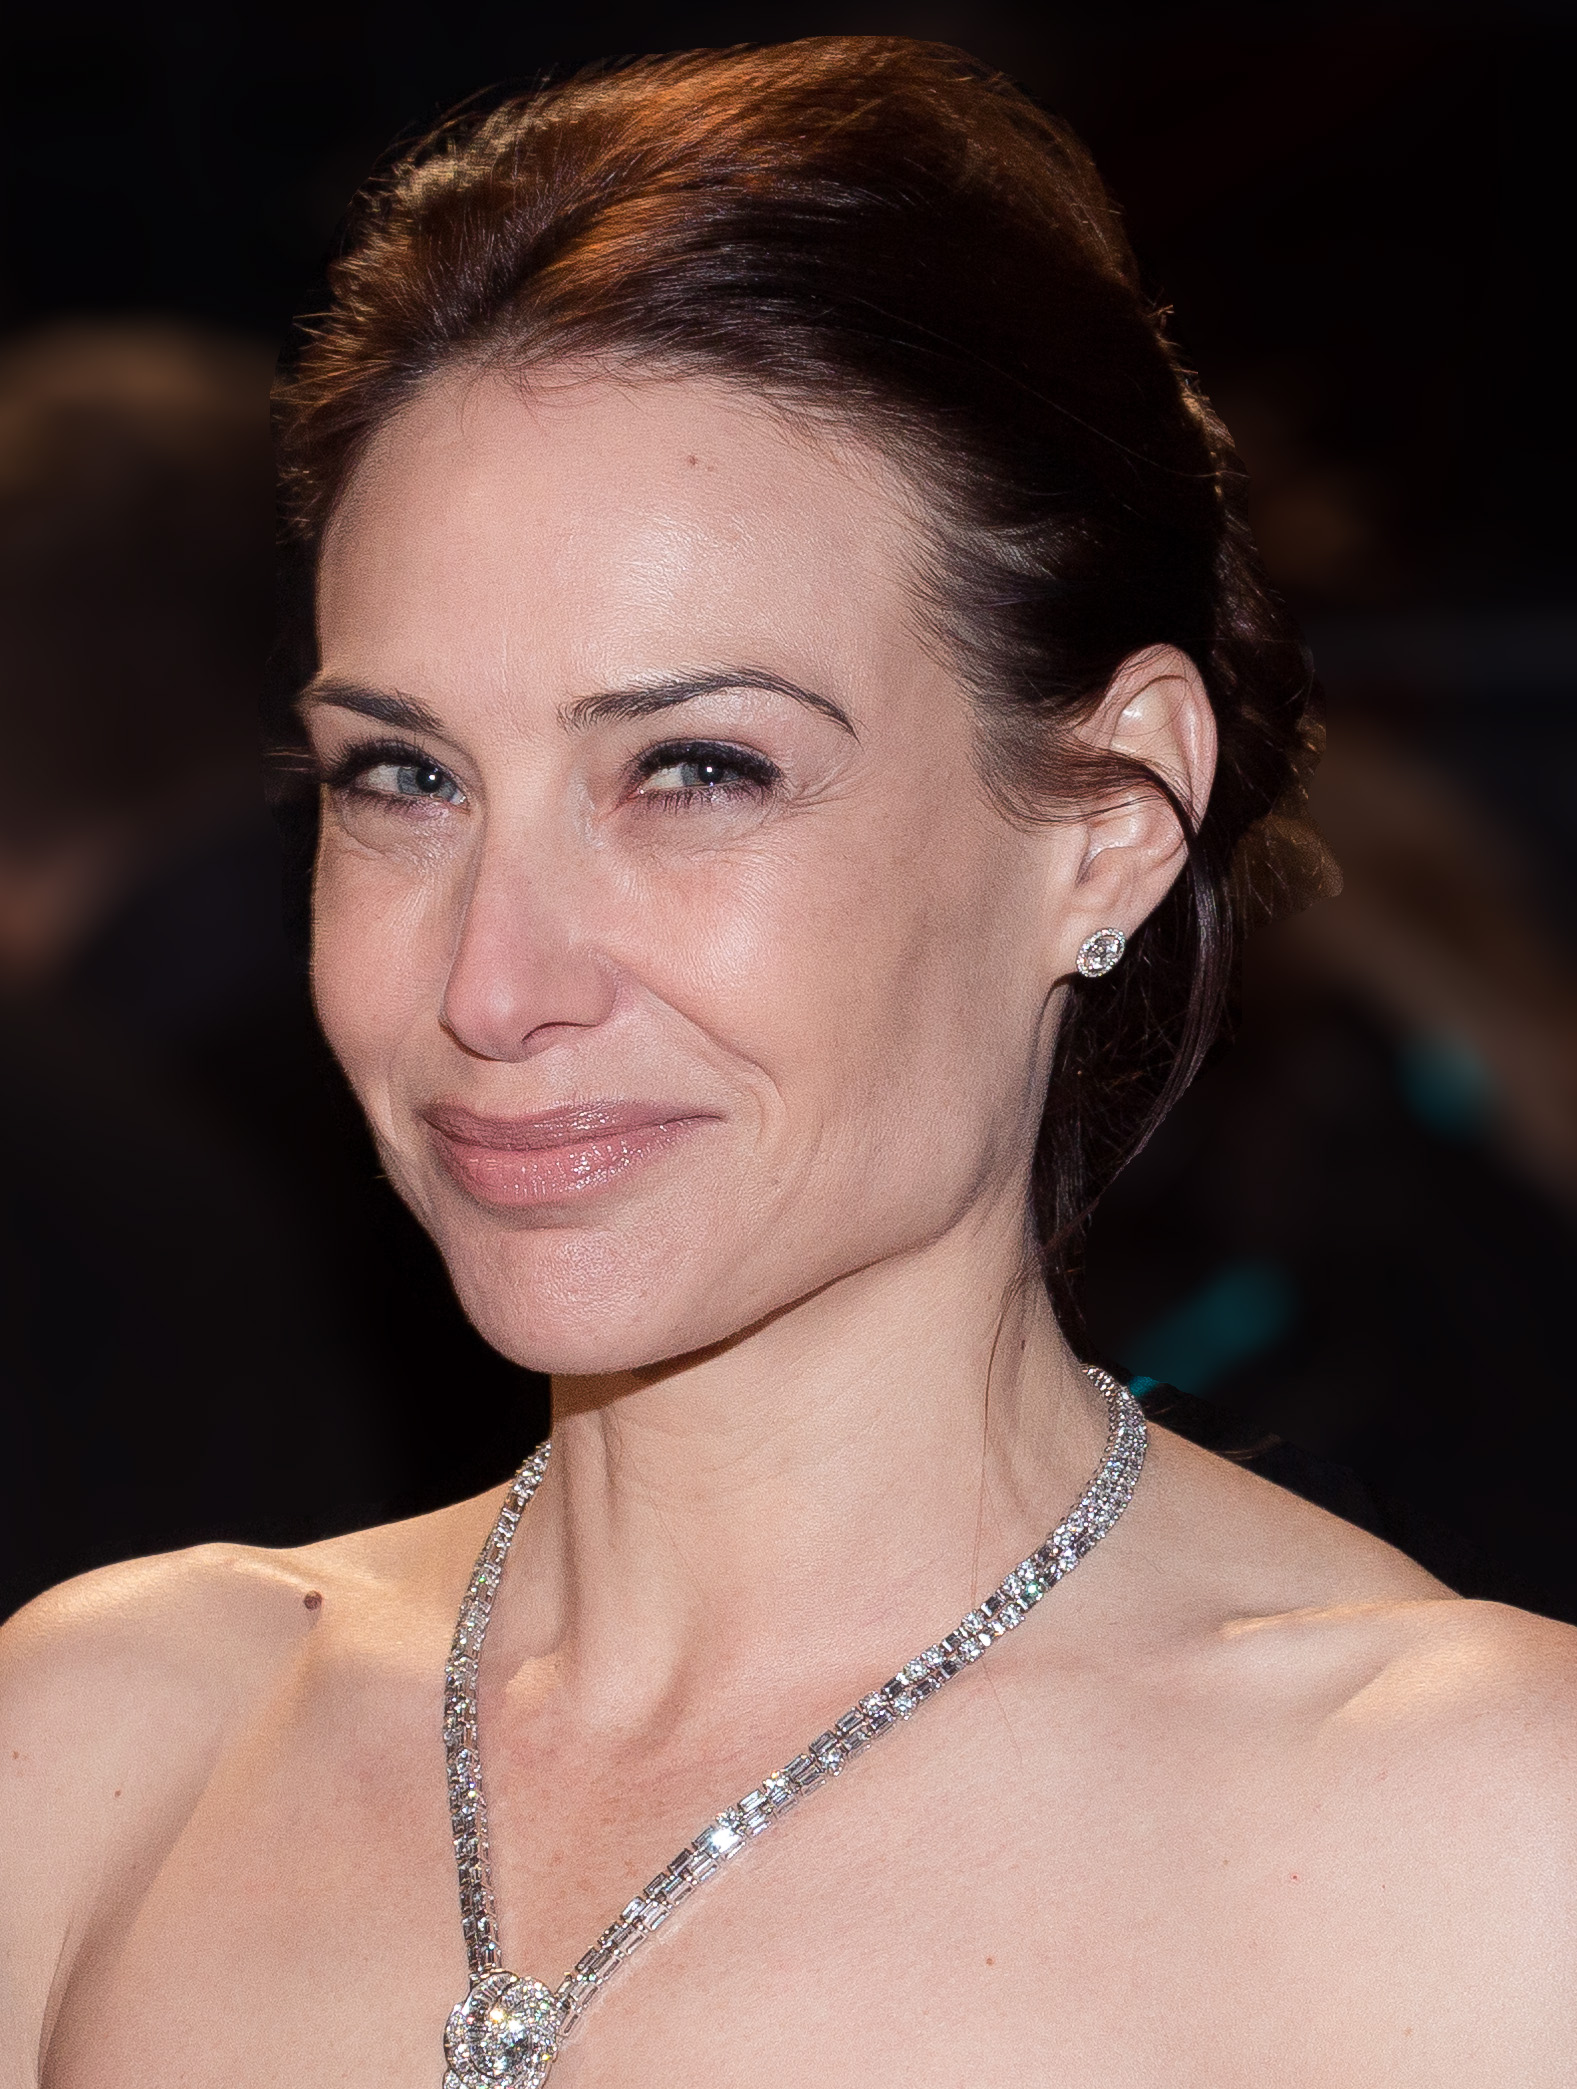 Claire Forlani earned a  million dollar salary, leaving the net worth at 5 million in 2017